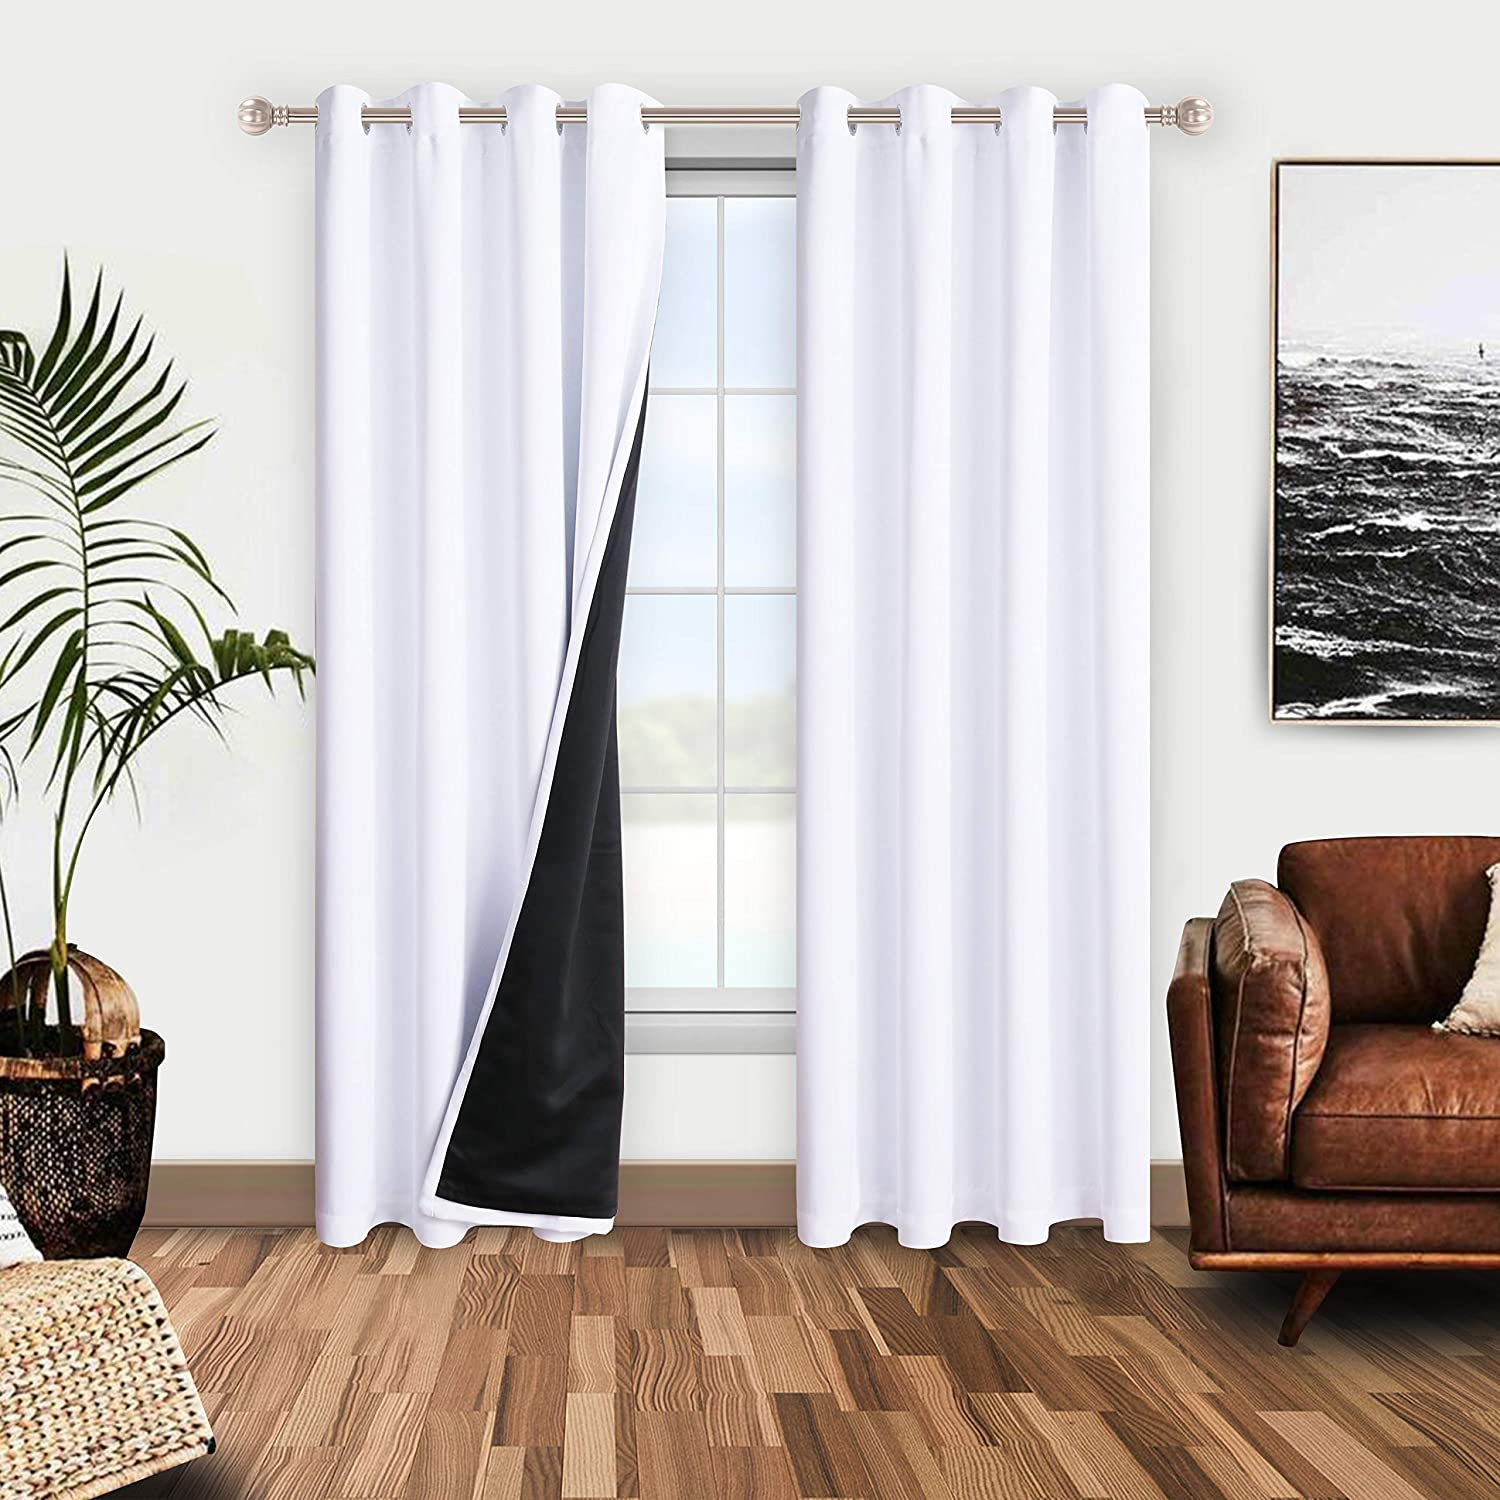 WONTEX 100% White Blackout Curtains for Bedroom - Thermal Insulated, Energy Saving and Noise Reducing Lined Window Curtain Panels for Living Room, 52 x 72 inch, Set of 2 Grommet Curtains